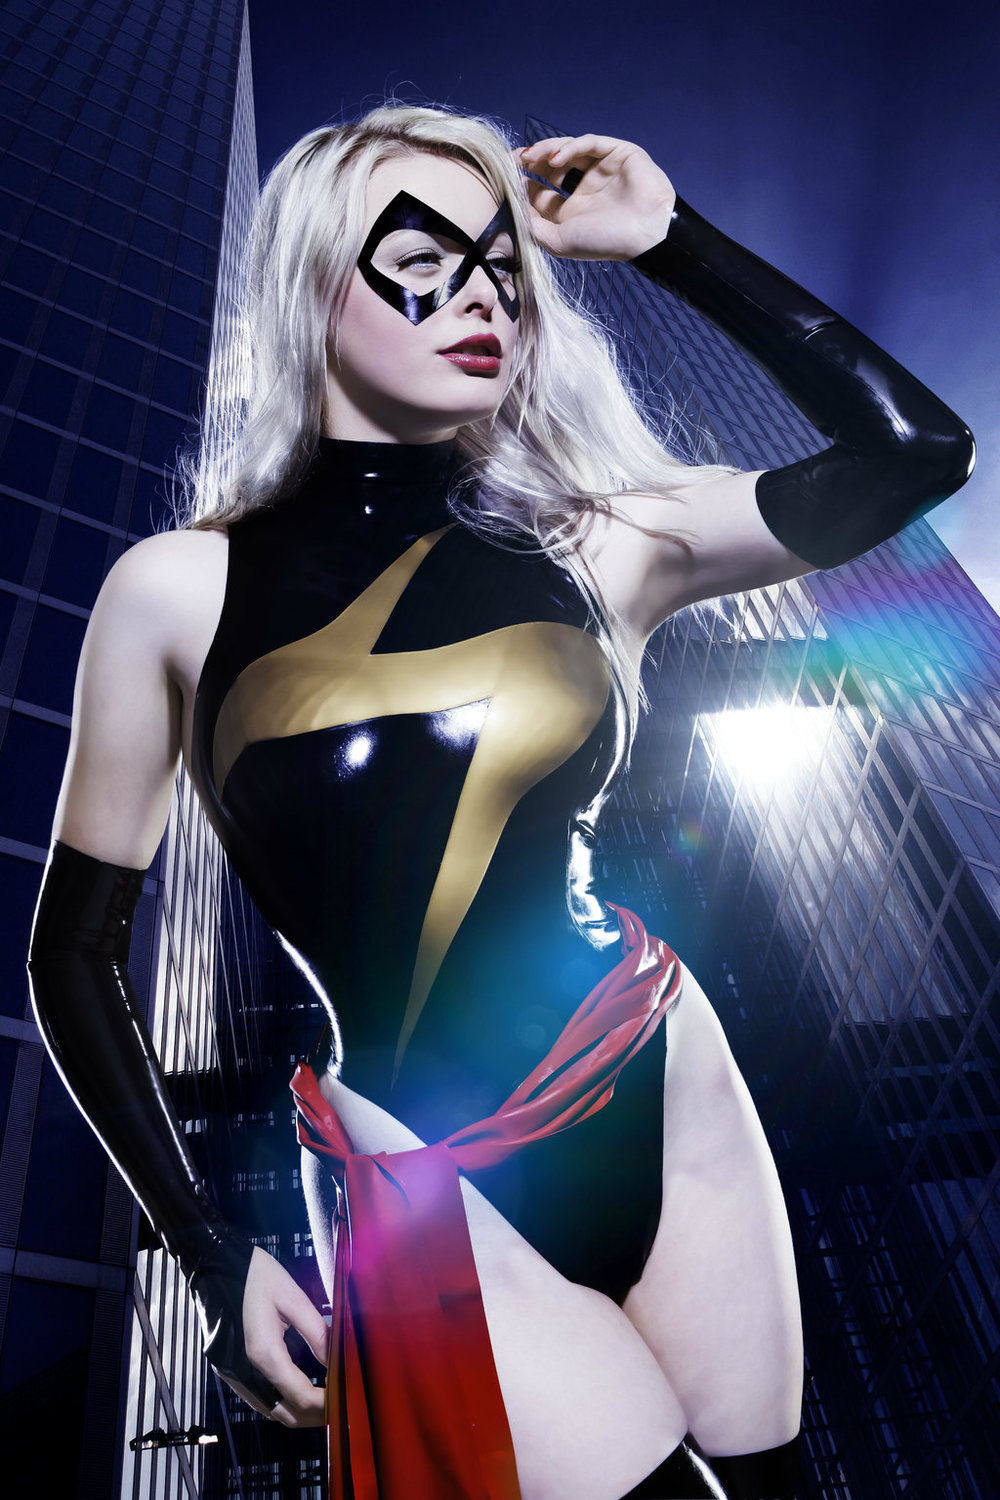 Valerie Virgin  is Ms. Marvel